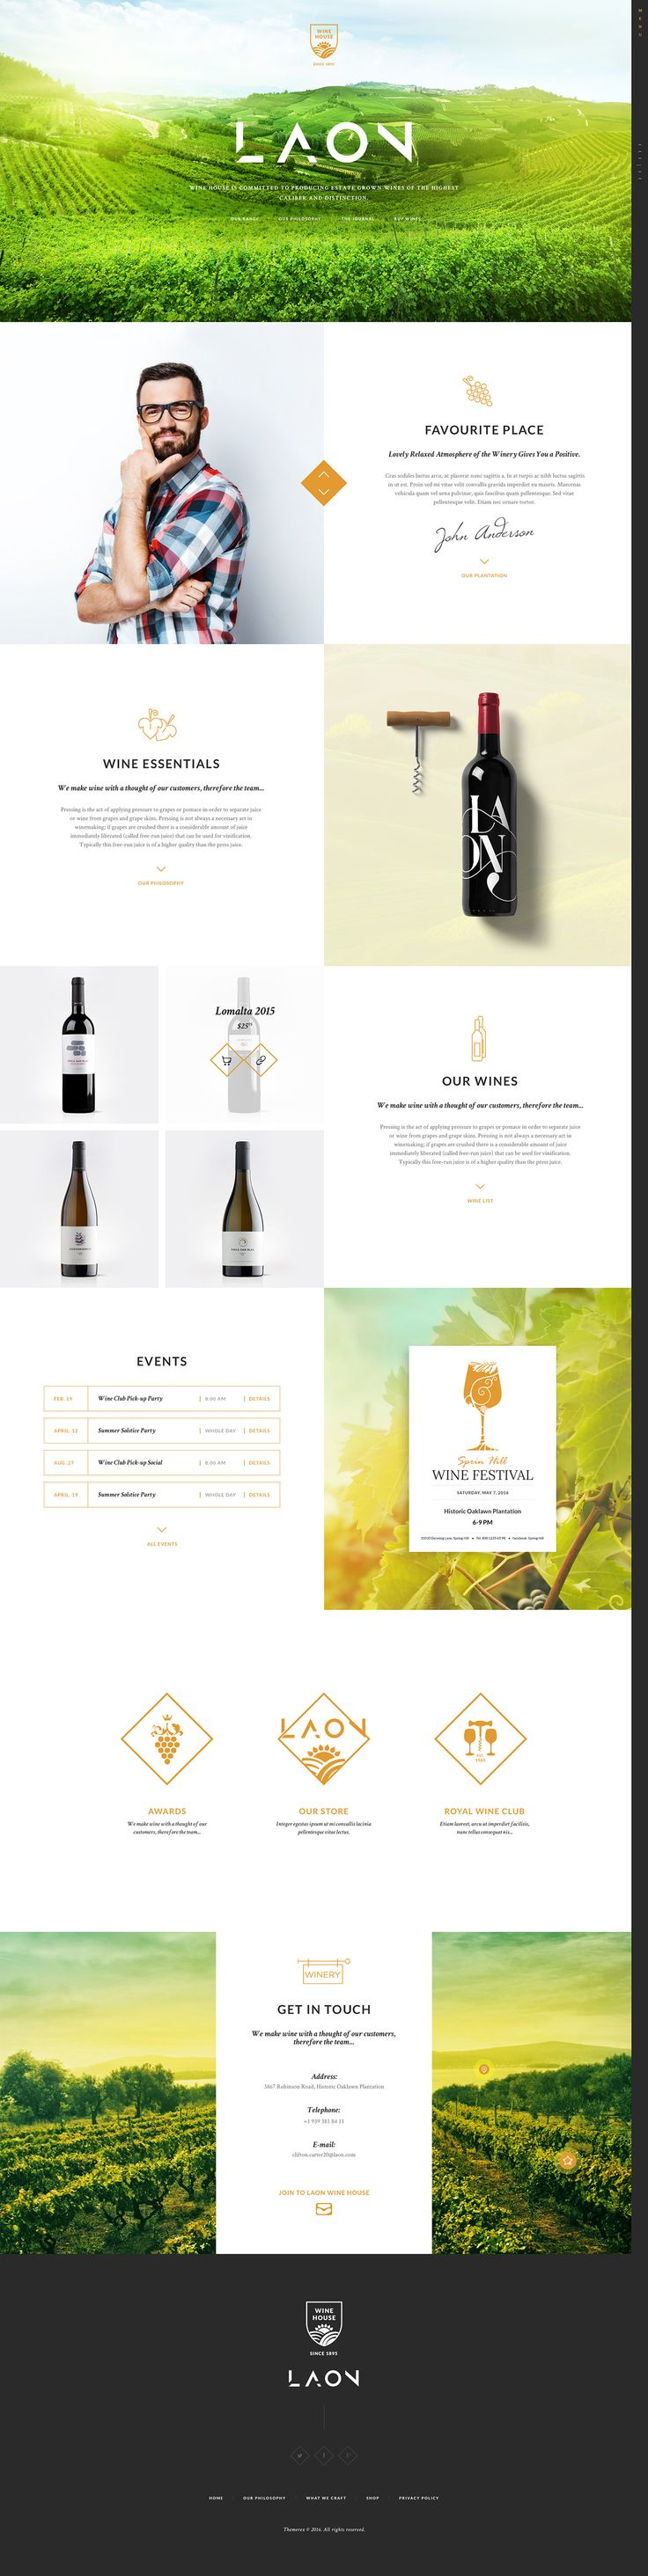 Laon is a WordPress theme crafted for winery/vineyard websites, online wine shops, wine restaurants and food & wine blogs. You can also use it to build a website related to agritourism.